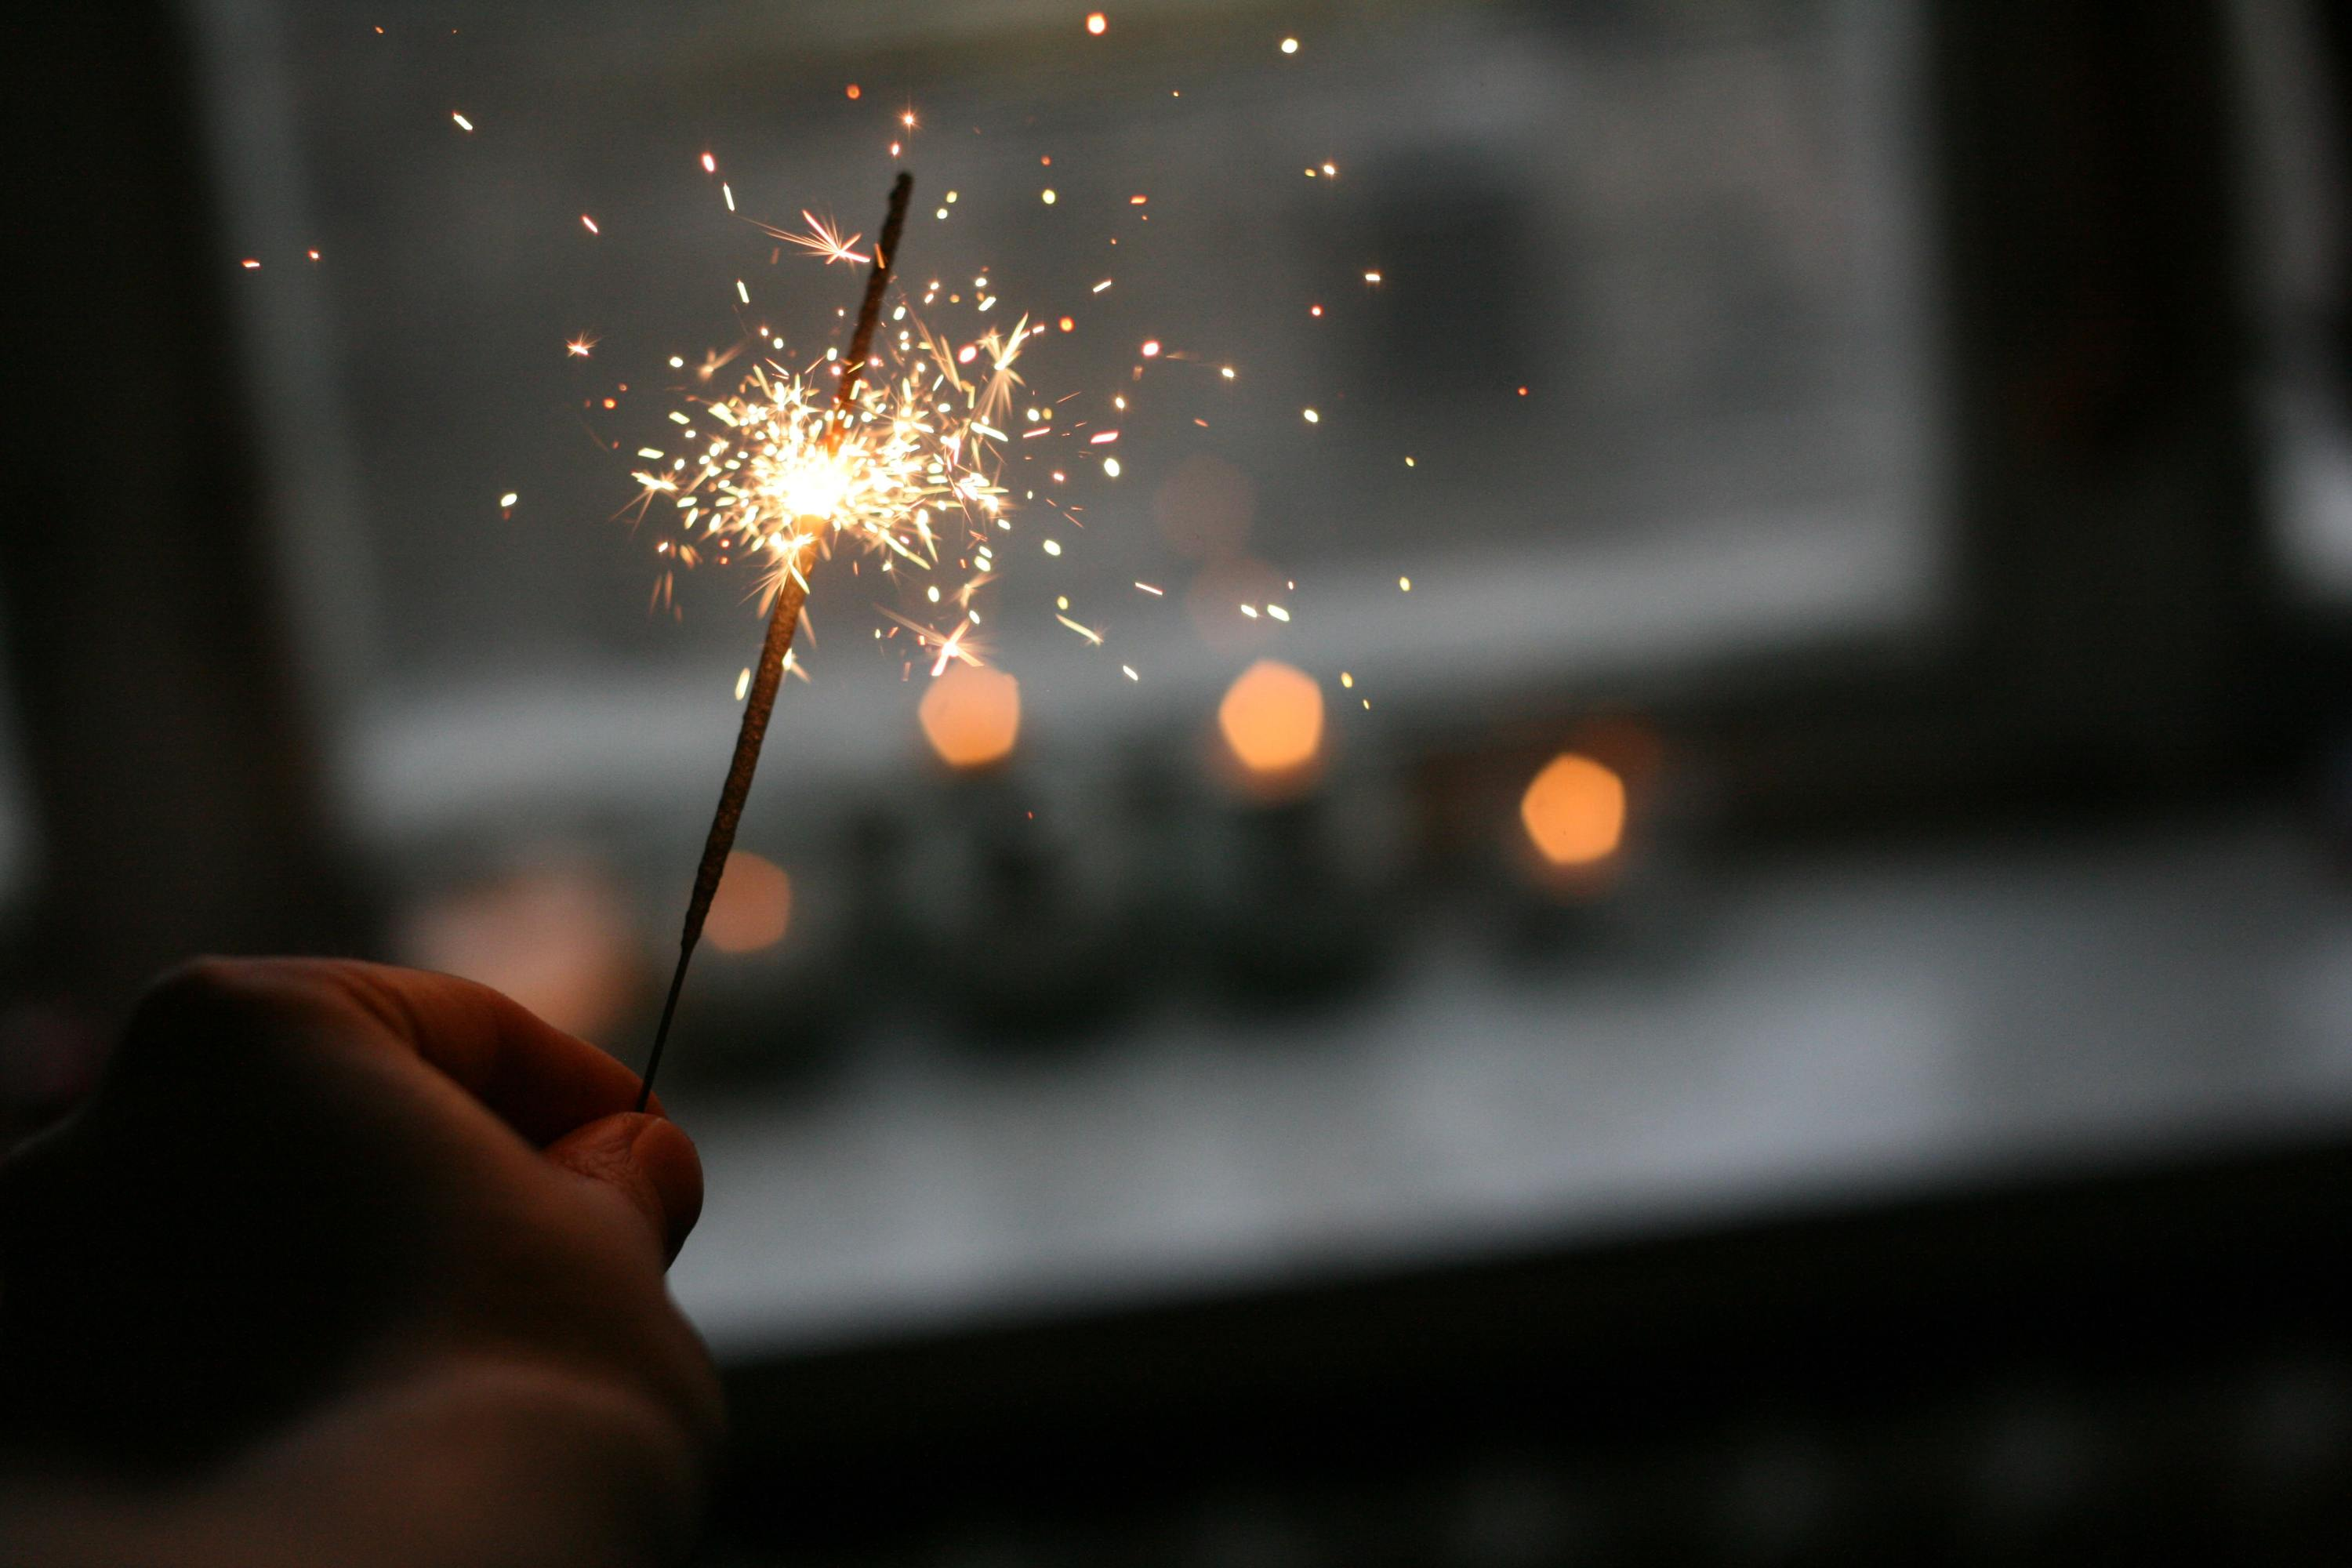 New Year's Eve: Taking us into 2021 are optimism and hope